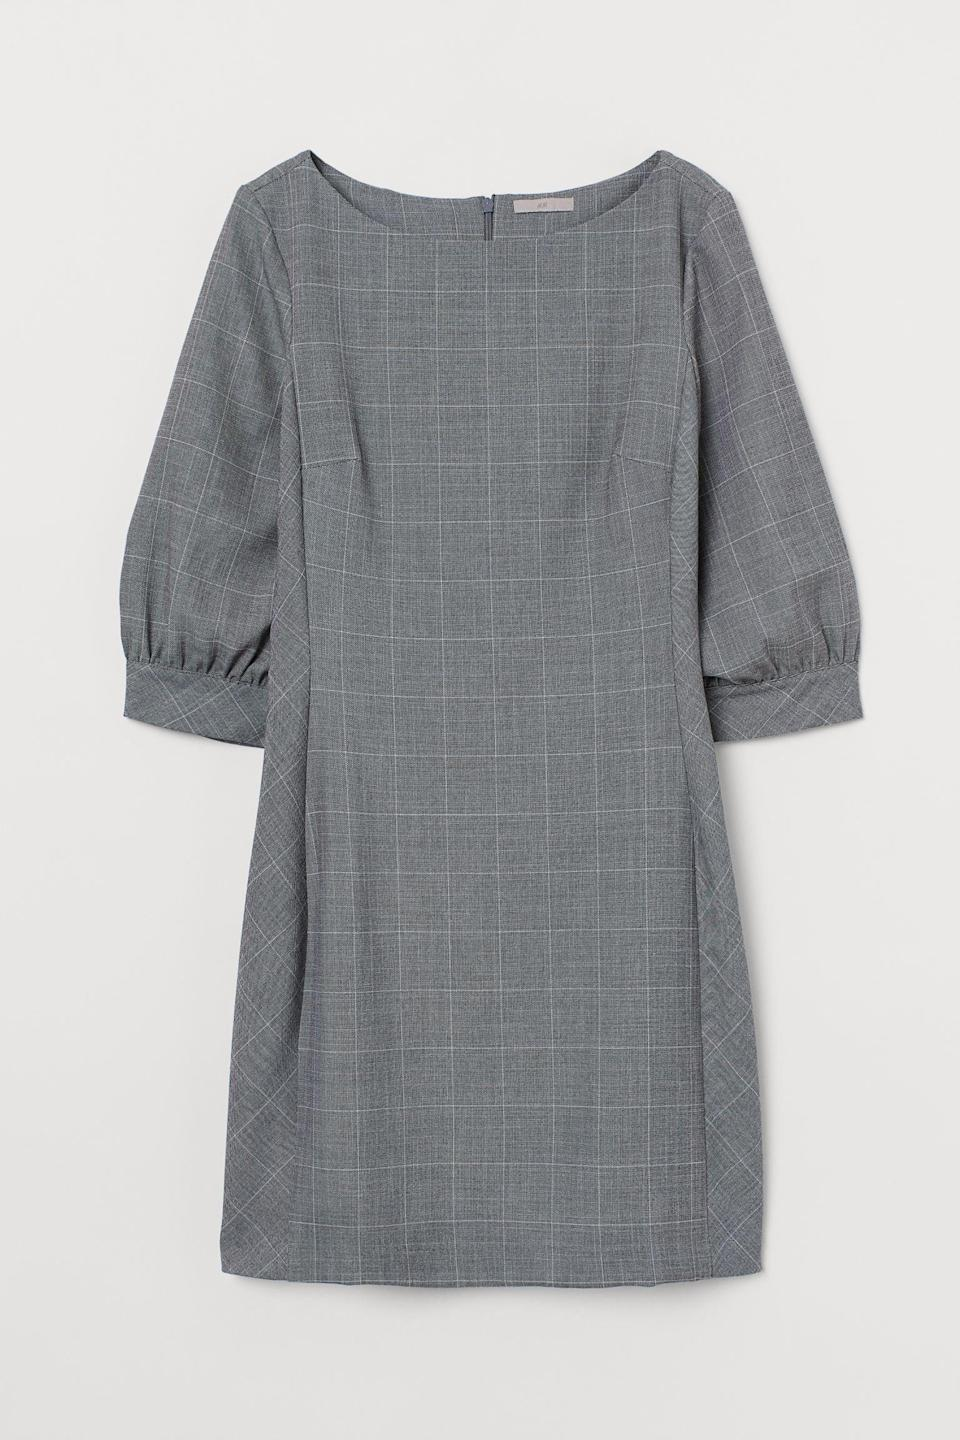 <p>This <span>Fitted Dress</span> ($26, originally $40) has a classic, work-ready appeal.</p>